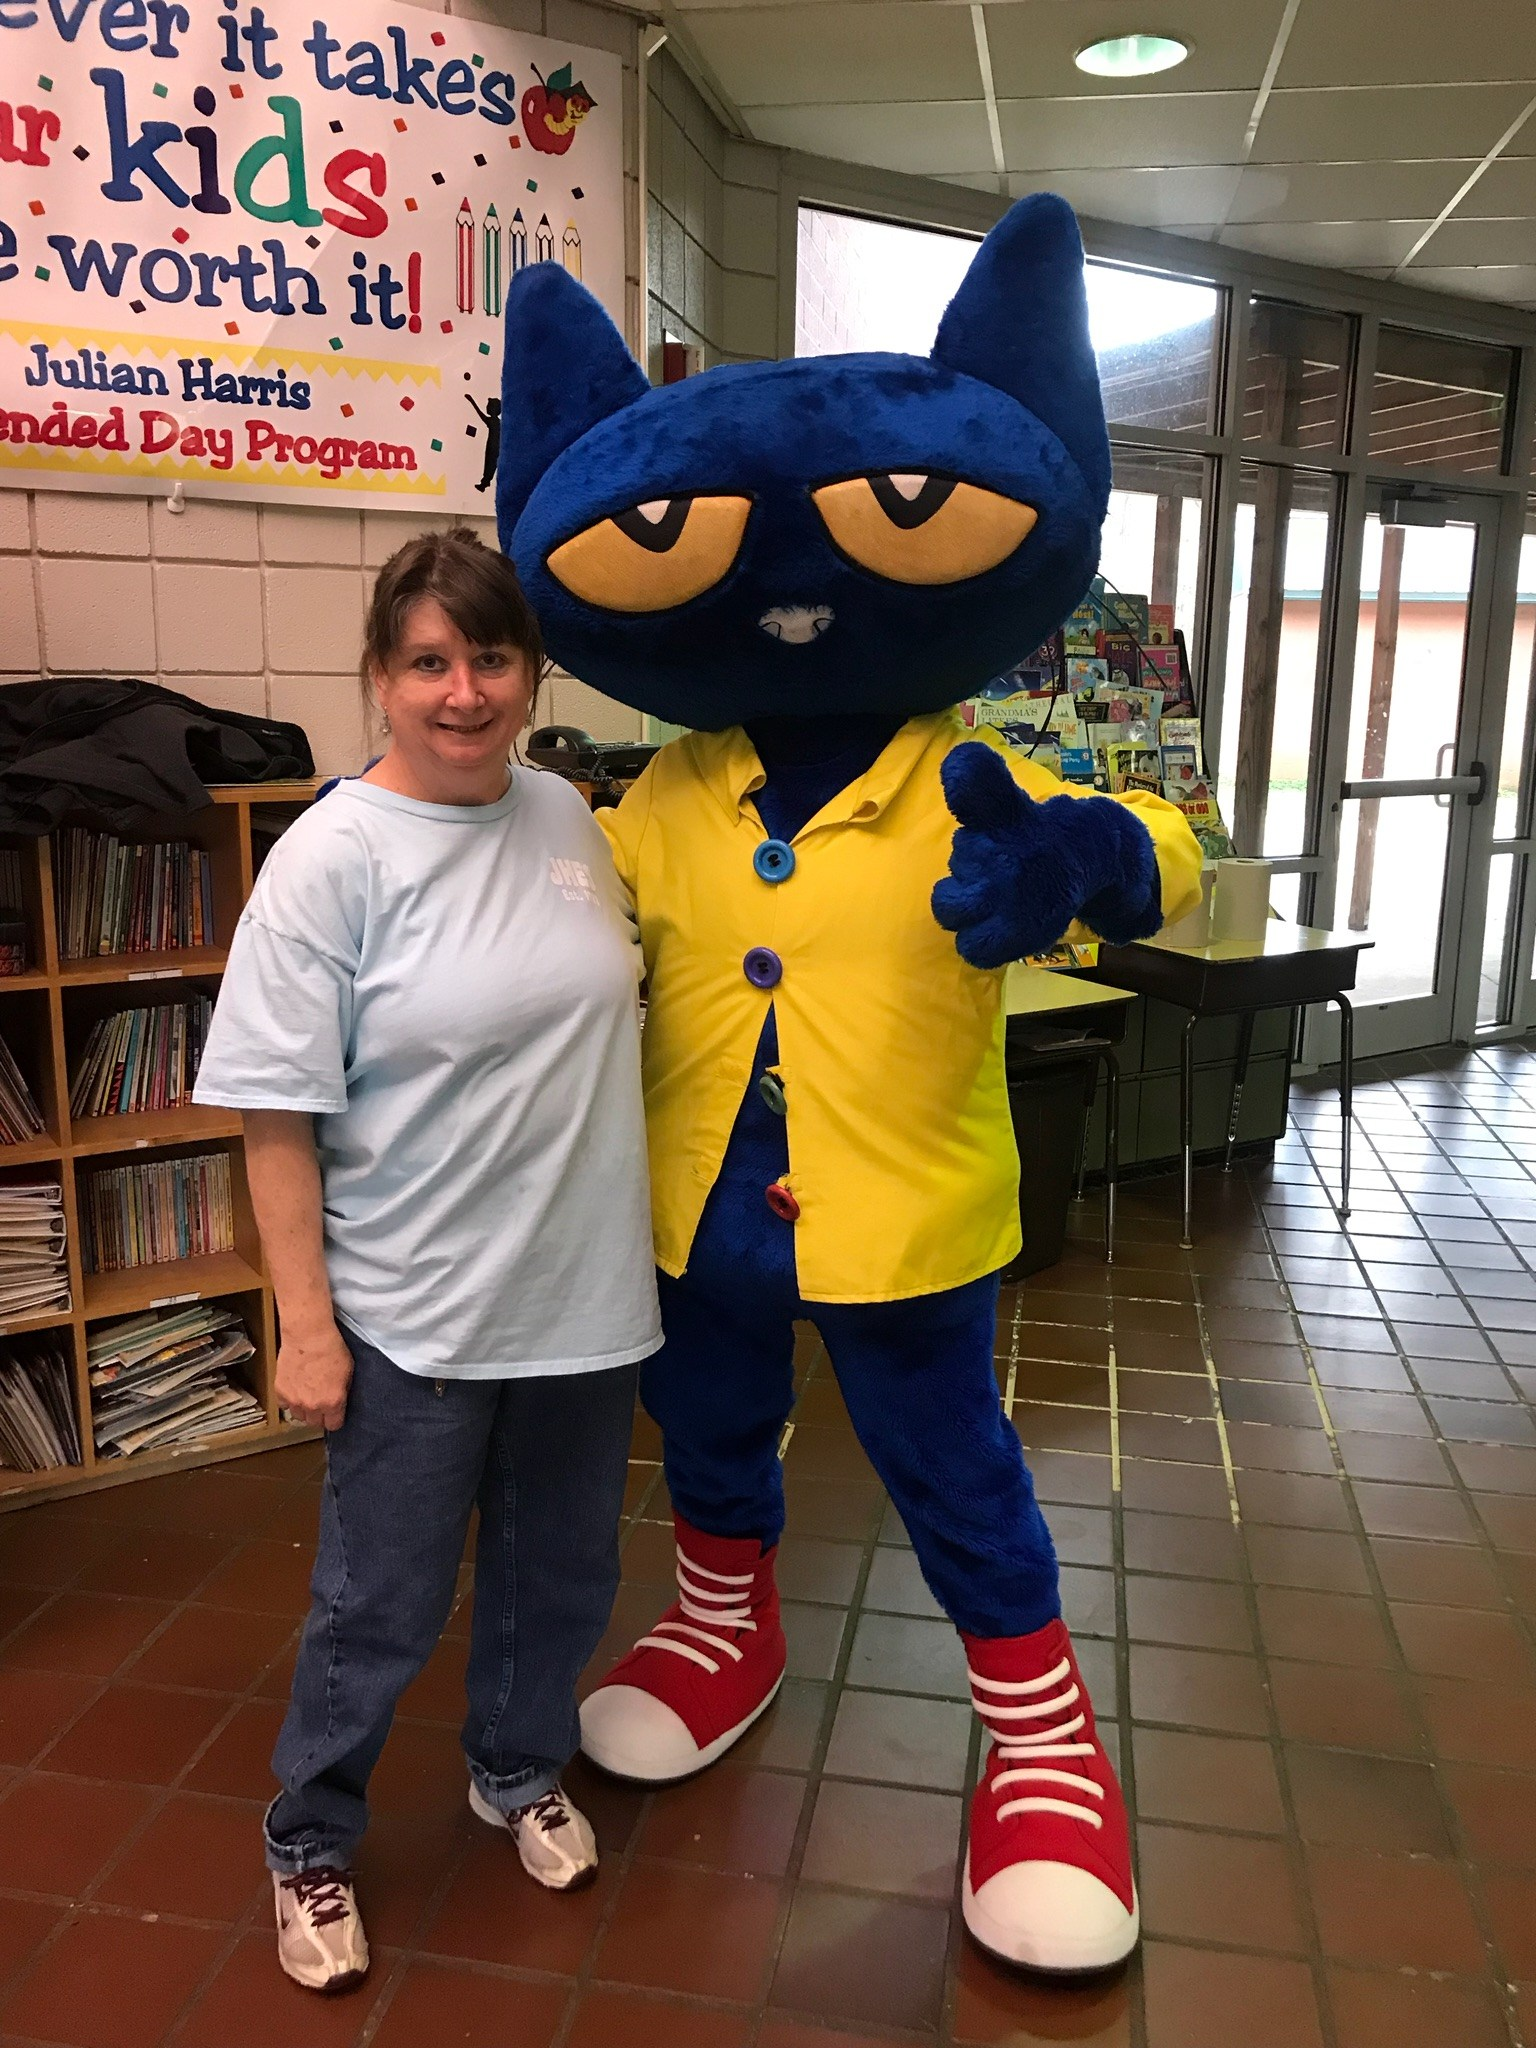 Pete the Cat Visits JHES Image